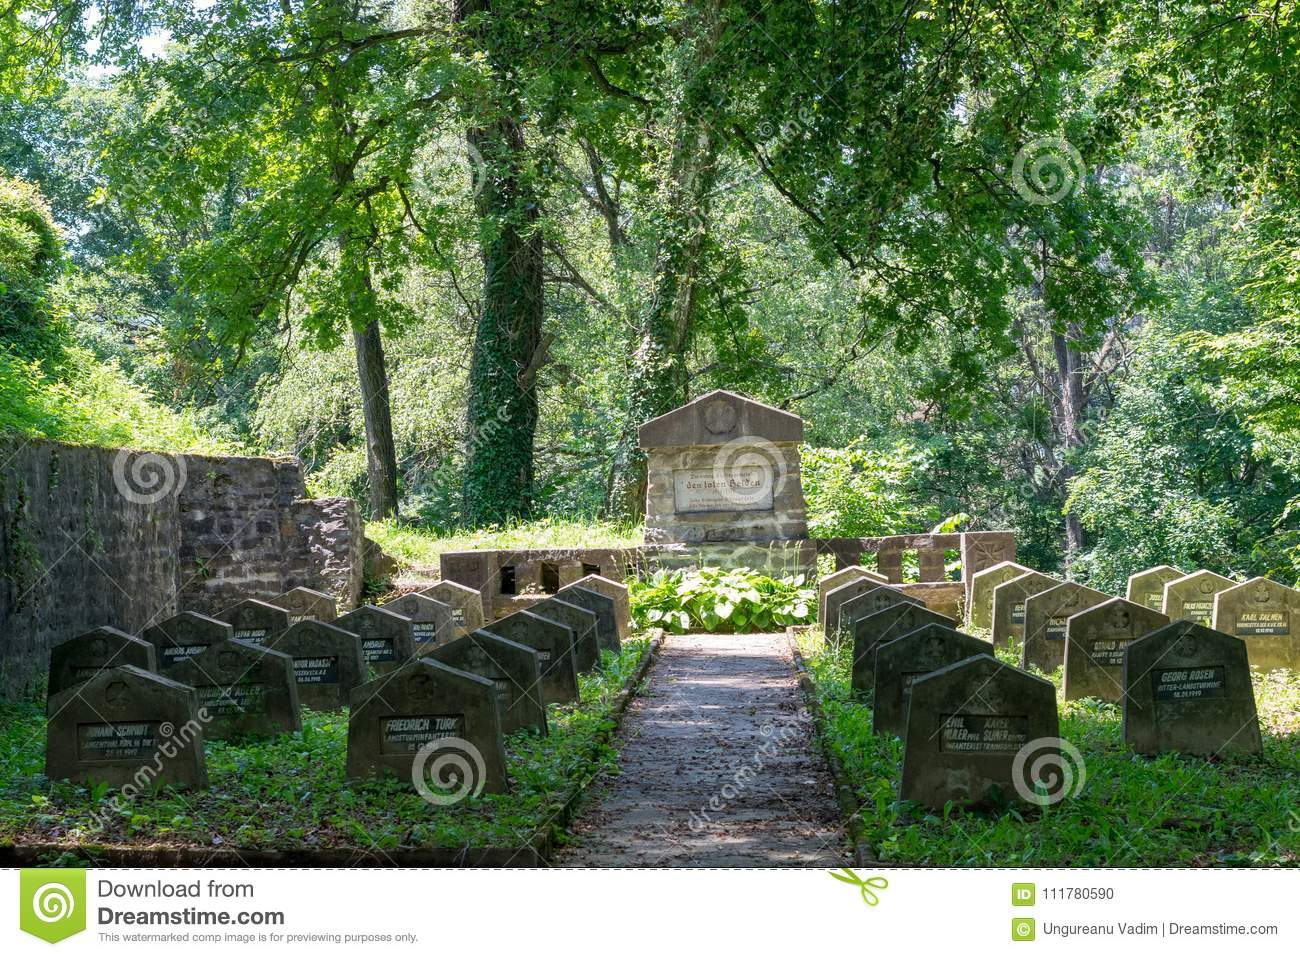 SIGHISOARA, ROMANIA - 1 JULY 2016: WWI Cemetery, near Saxon cemetery, located next to the Church on the Hill in Sighisoara, Romani